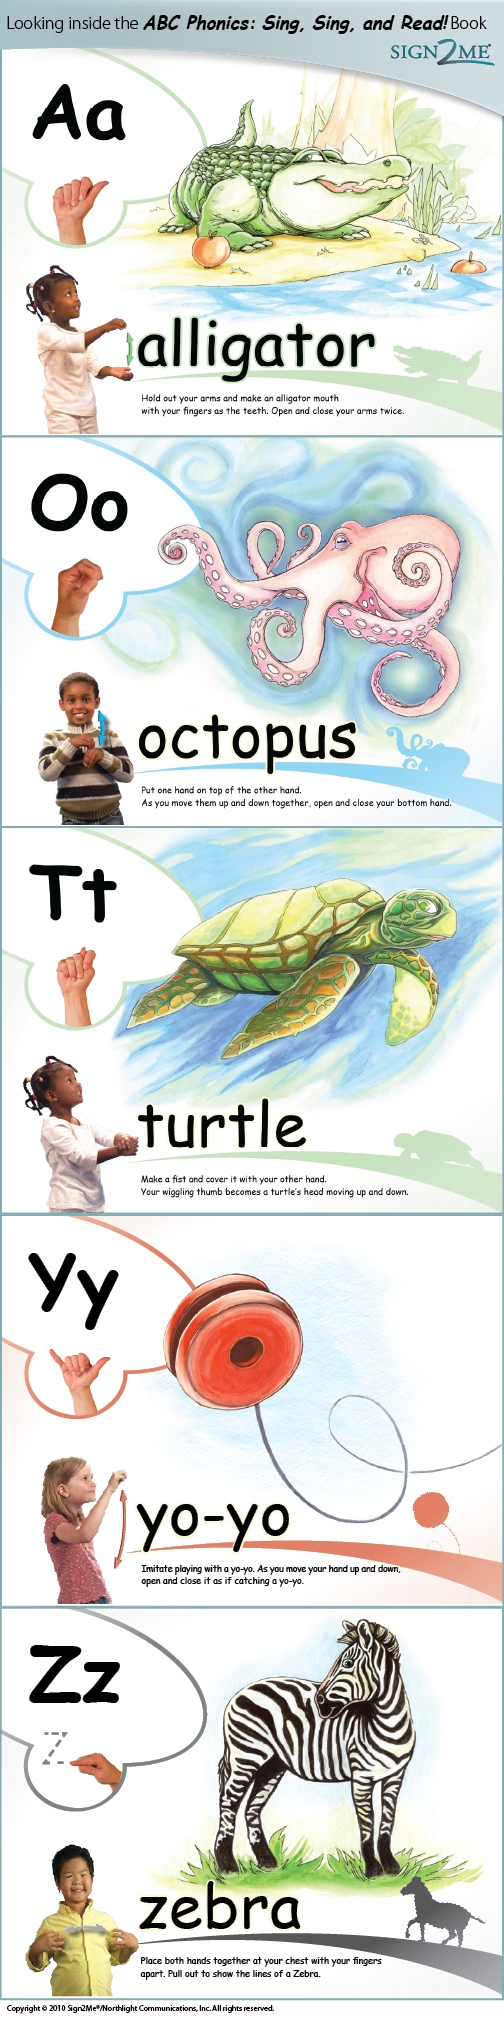 look_inside_the_abc_phonics_book